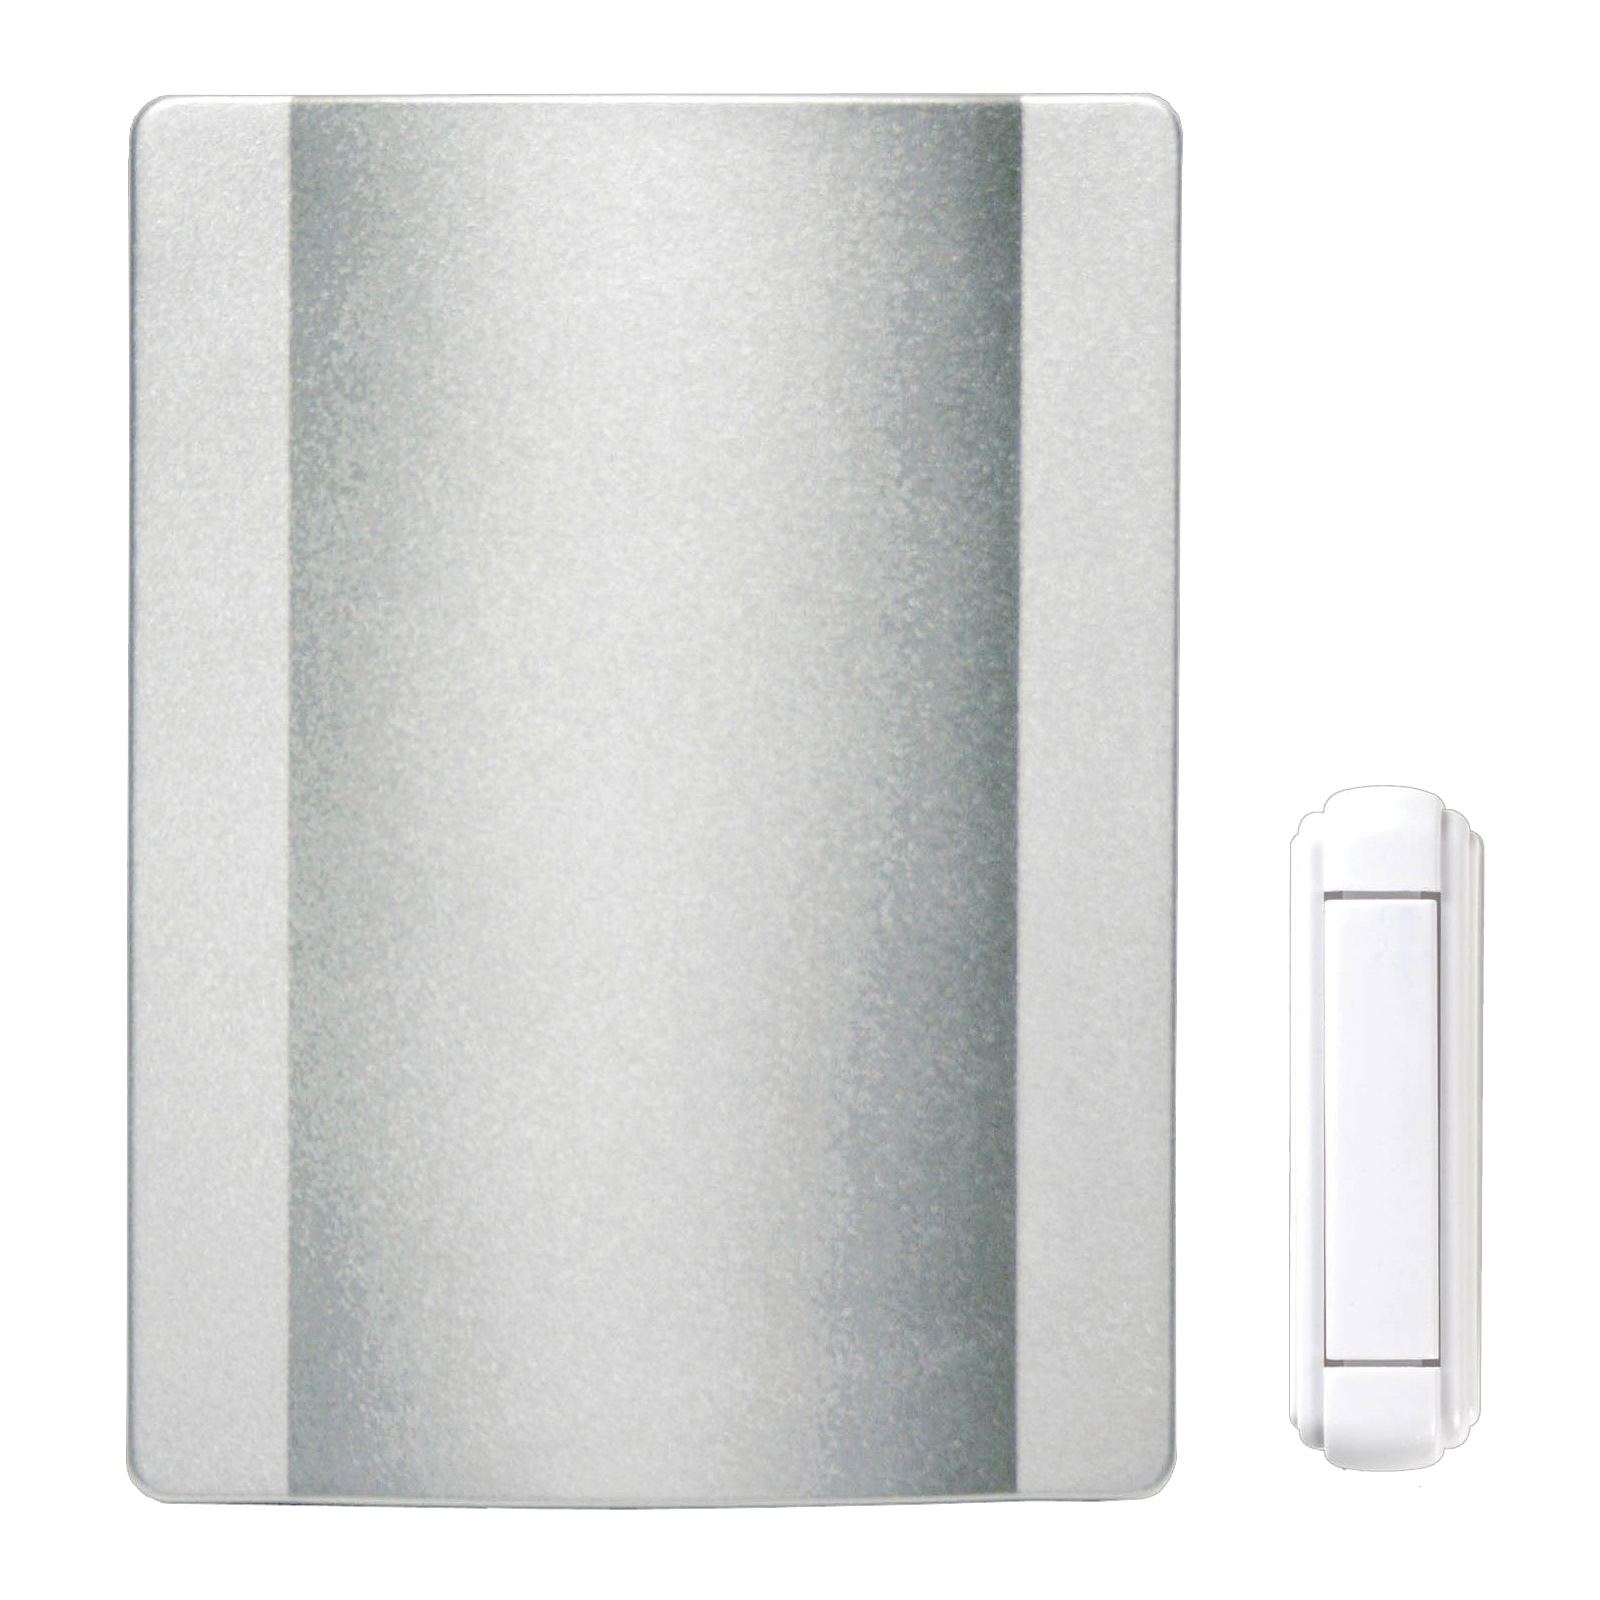 Picture of Heath Zenith SL-7451-02 Doorbell Kit, Ding, Ding-Dong, Westminster Tone, 75 dB